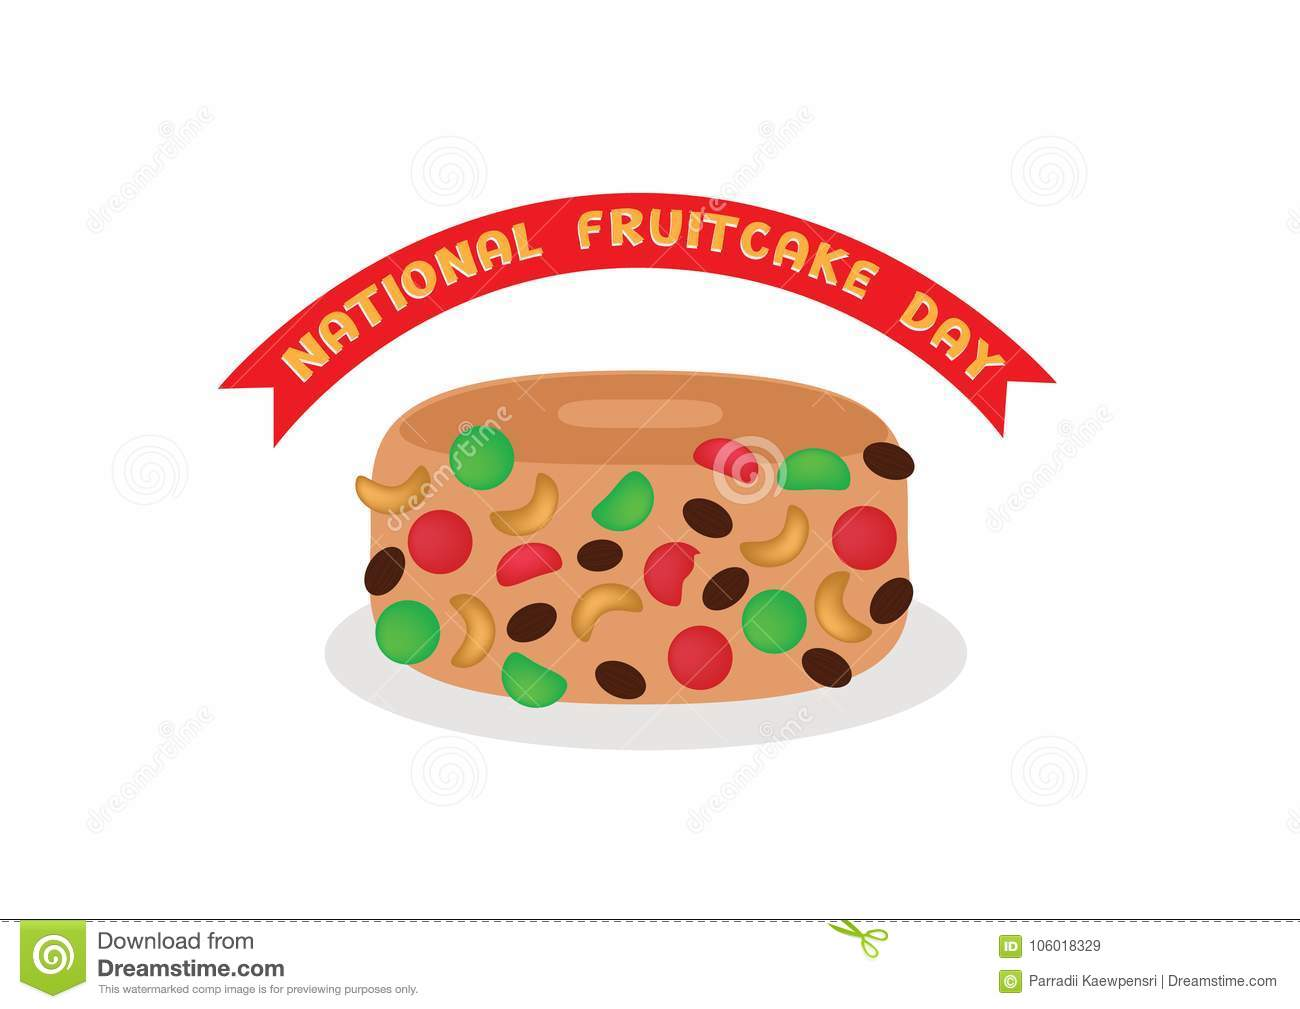 Nationaler Fruchtkuchen-Tag